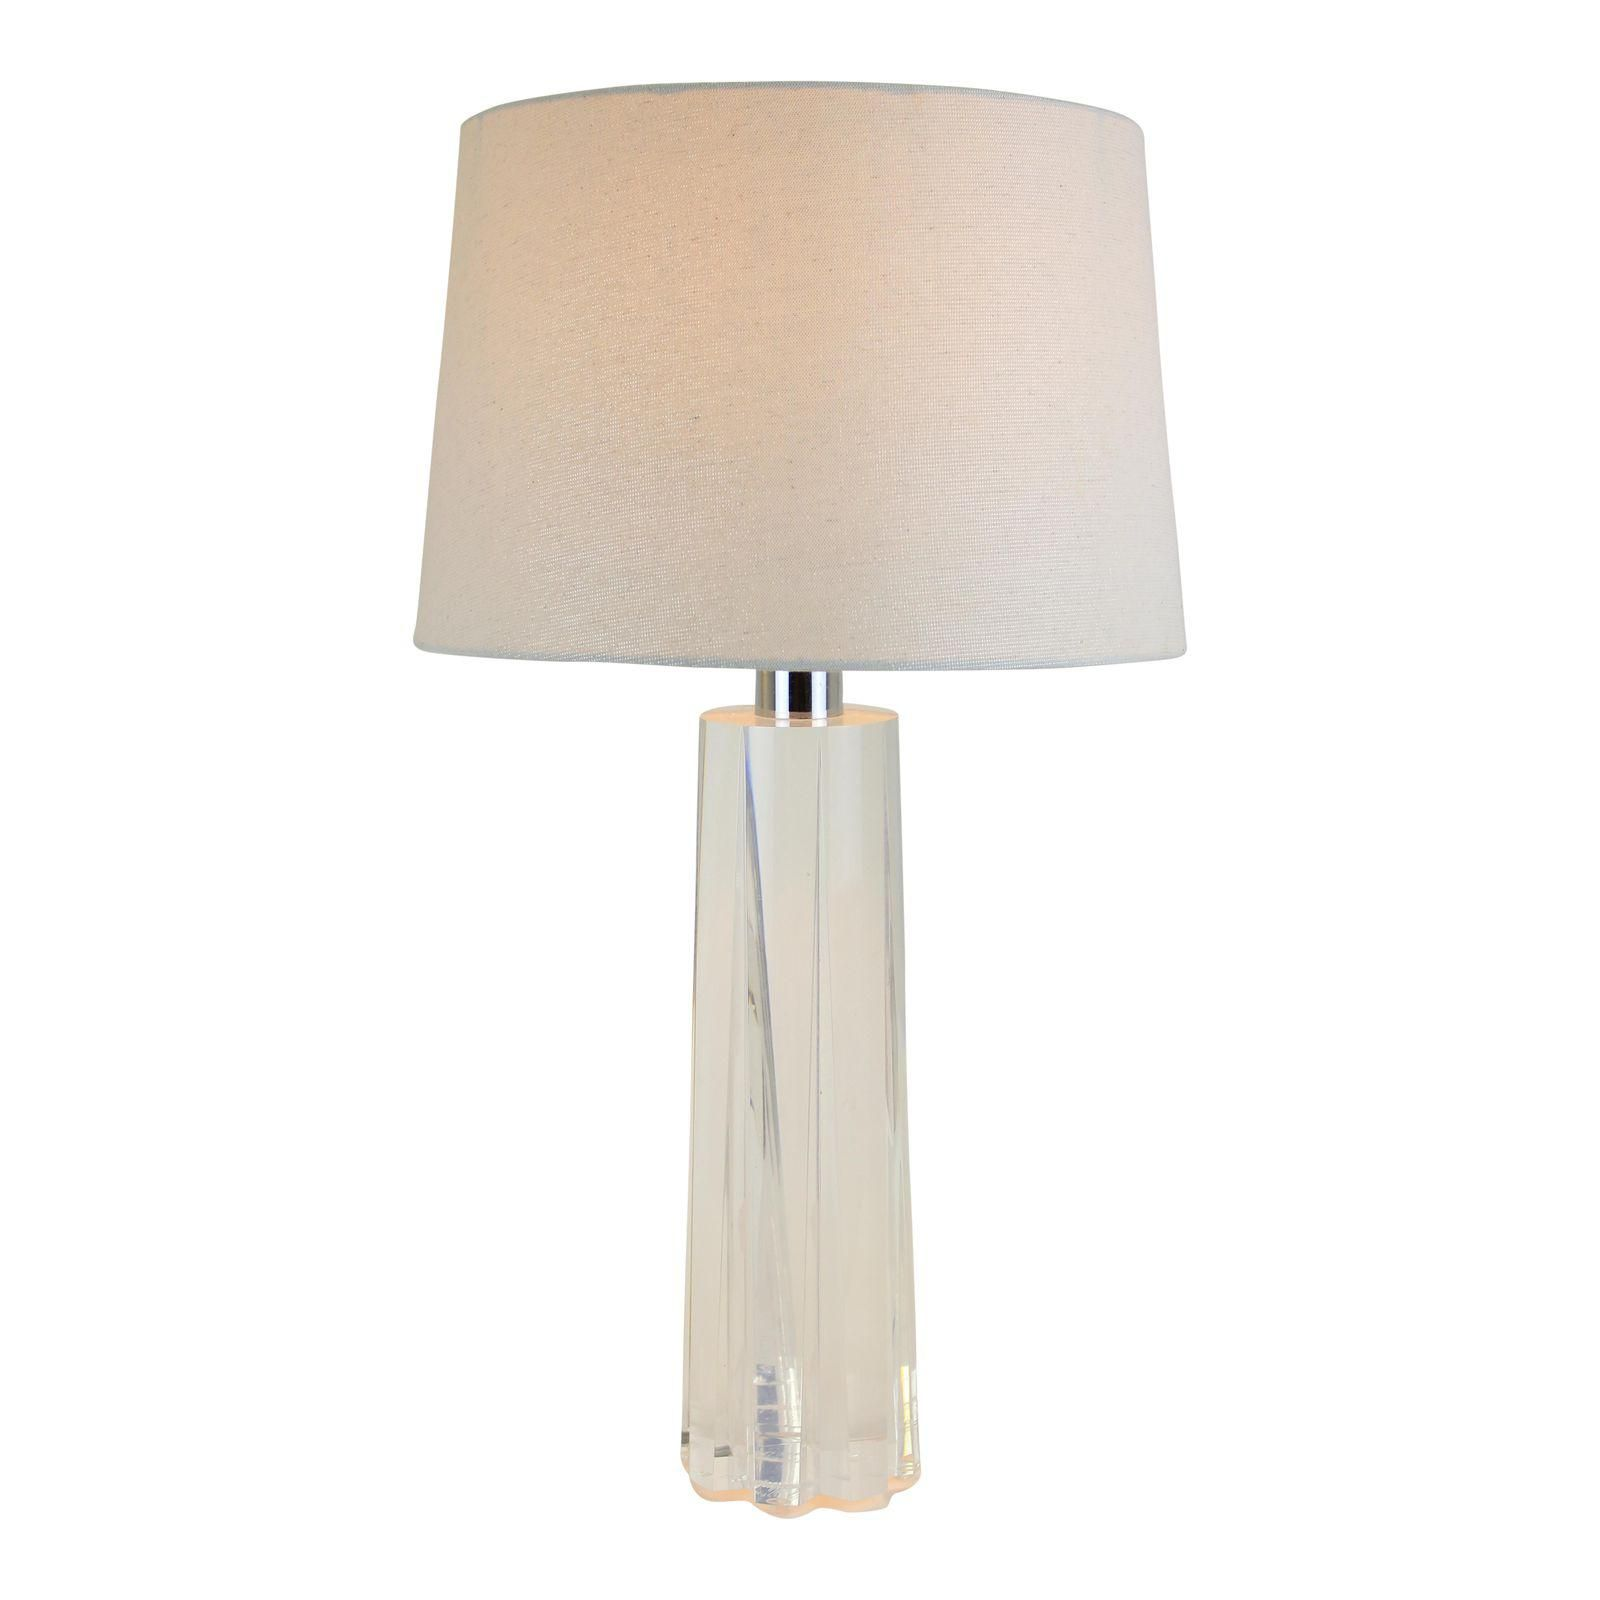 Image of 1970s mid century lucite table lamp apartment final 1970s mid century lucite table lamp geotapseo Images